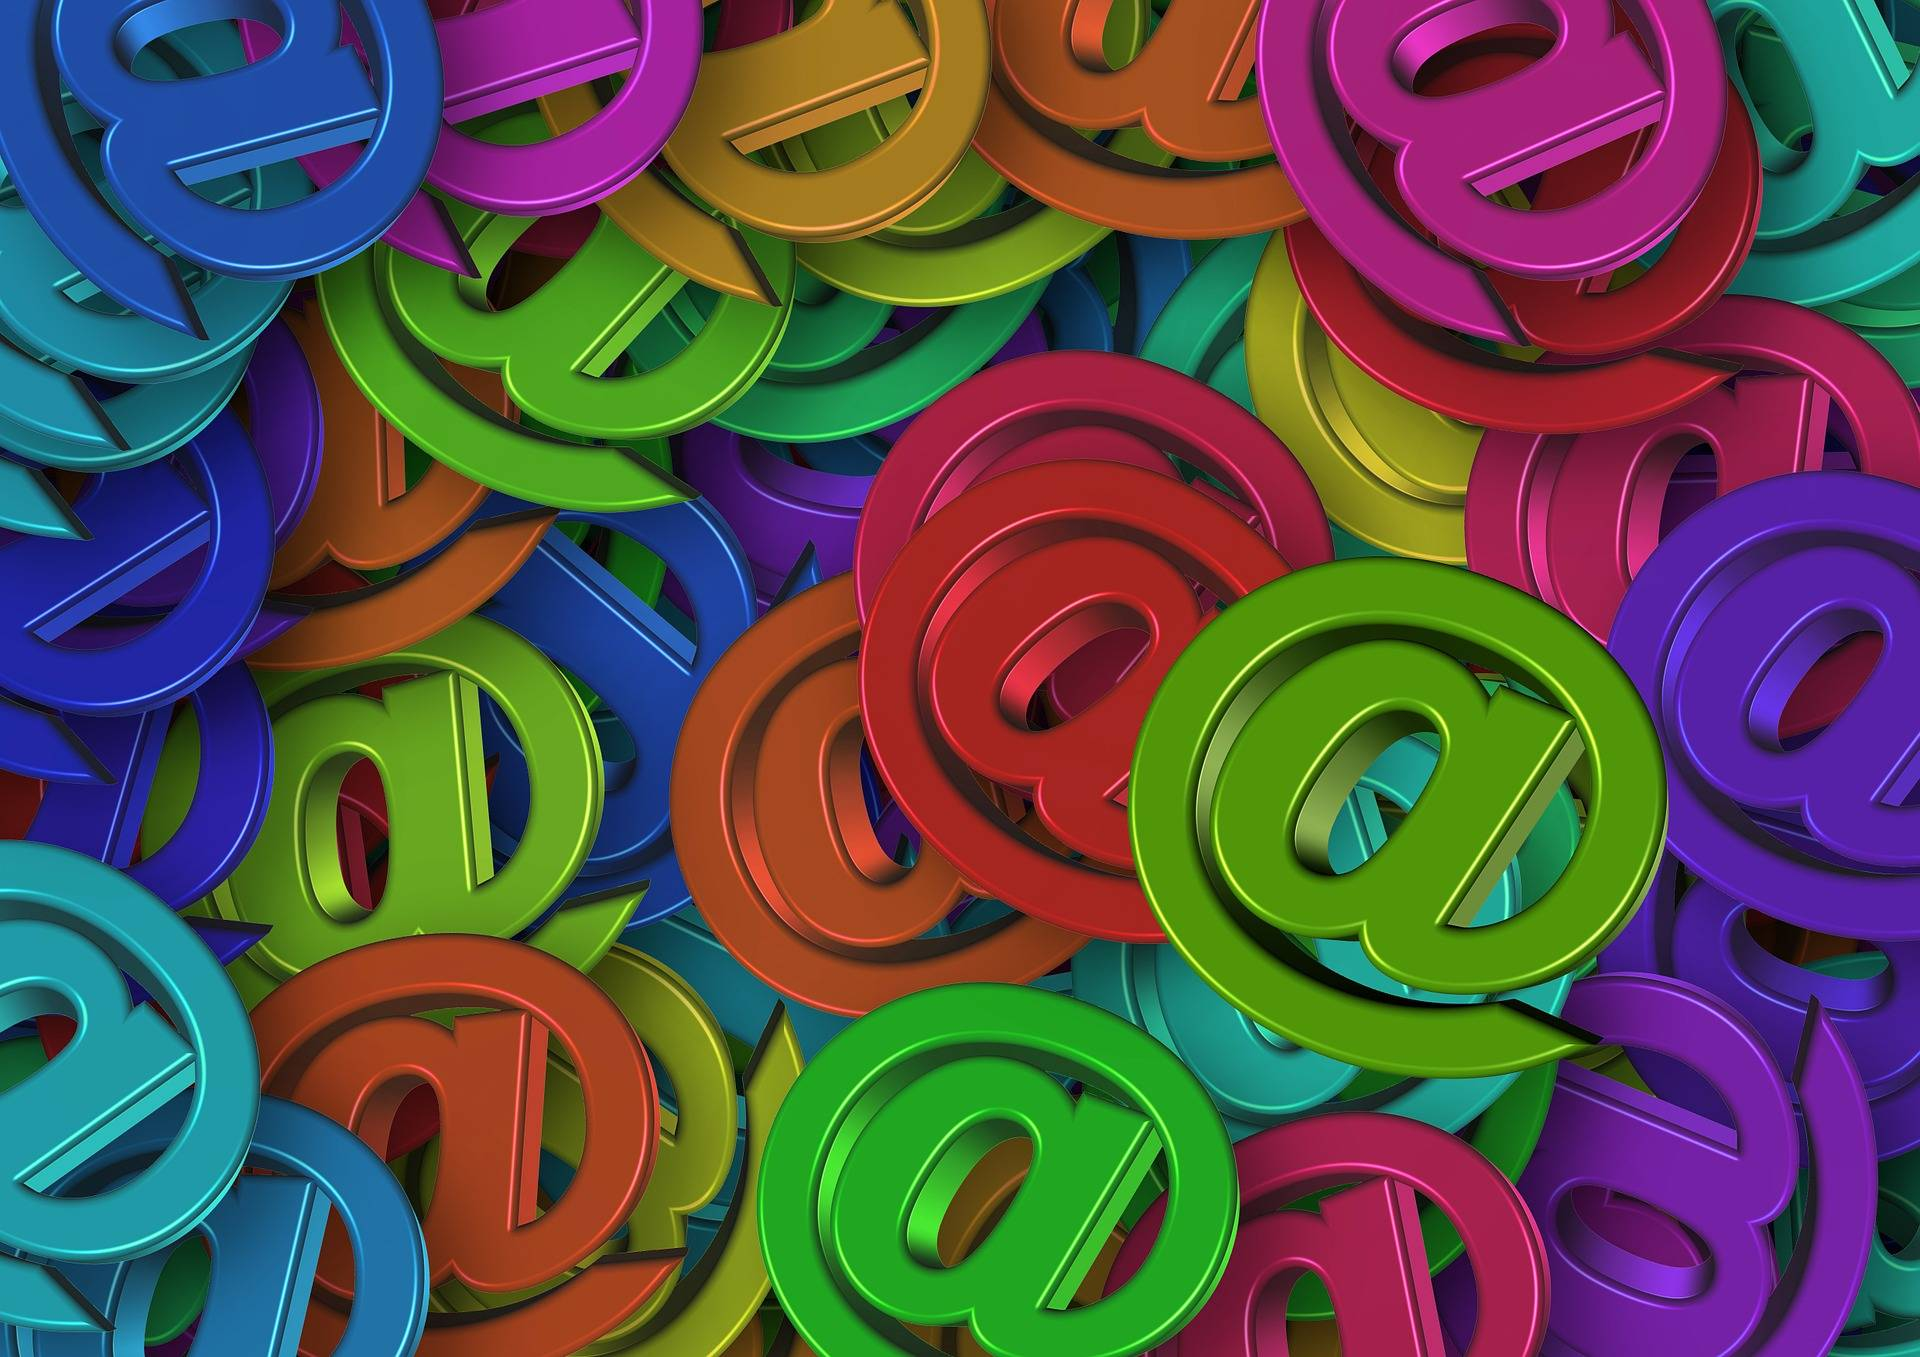 L Archivage Electronique Des Emails Quels Types D Emails Faut Il